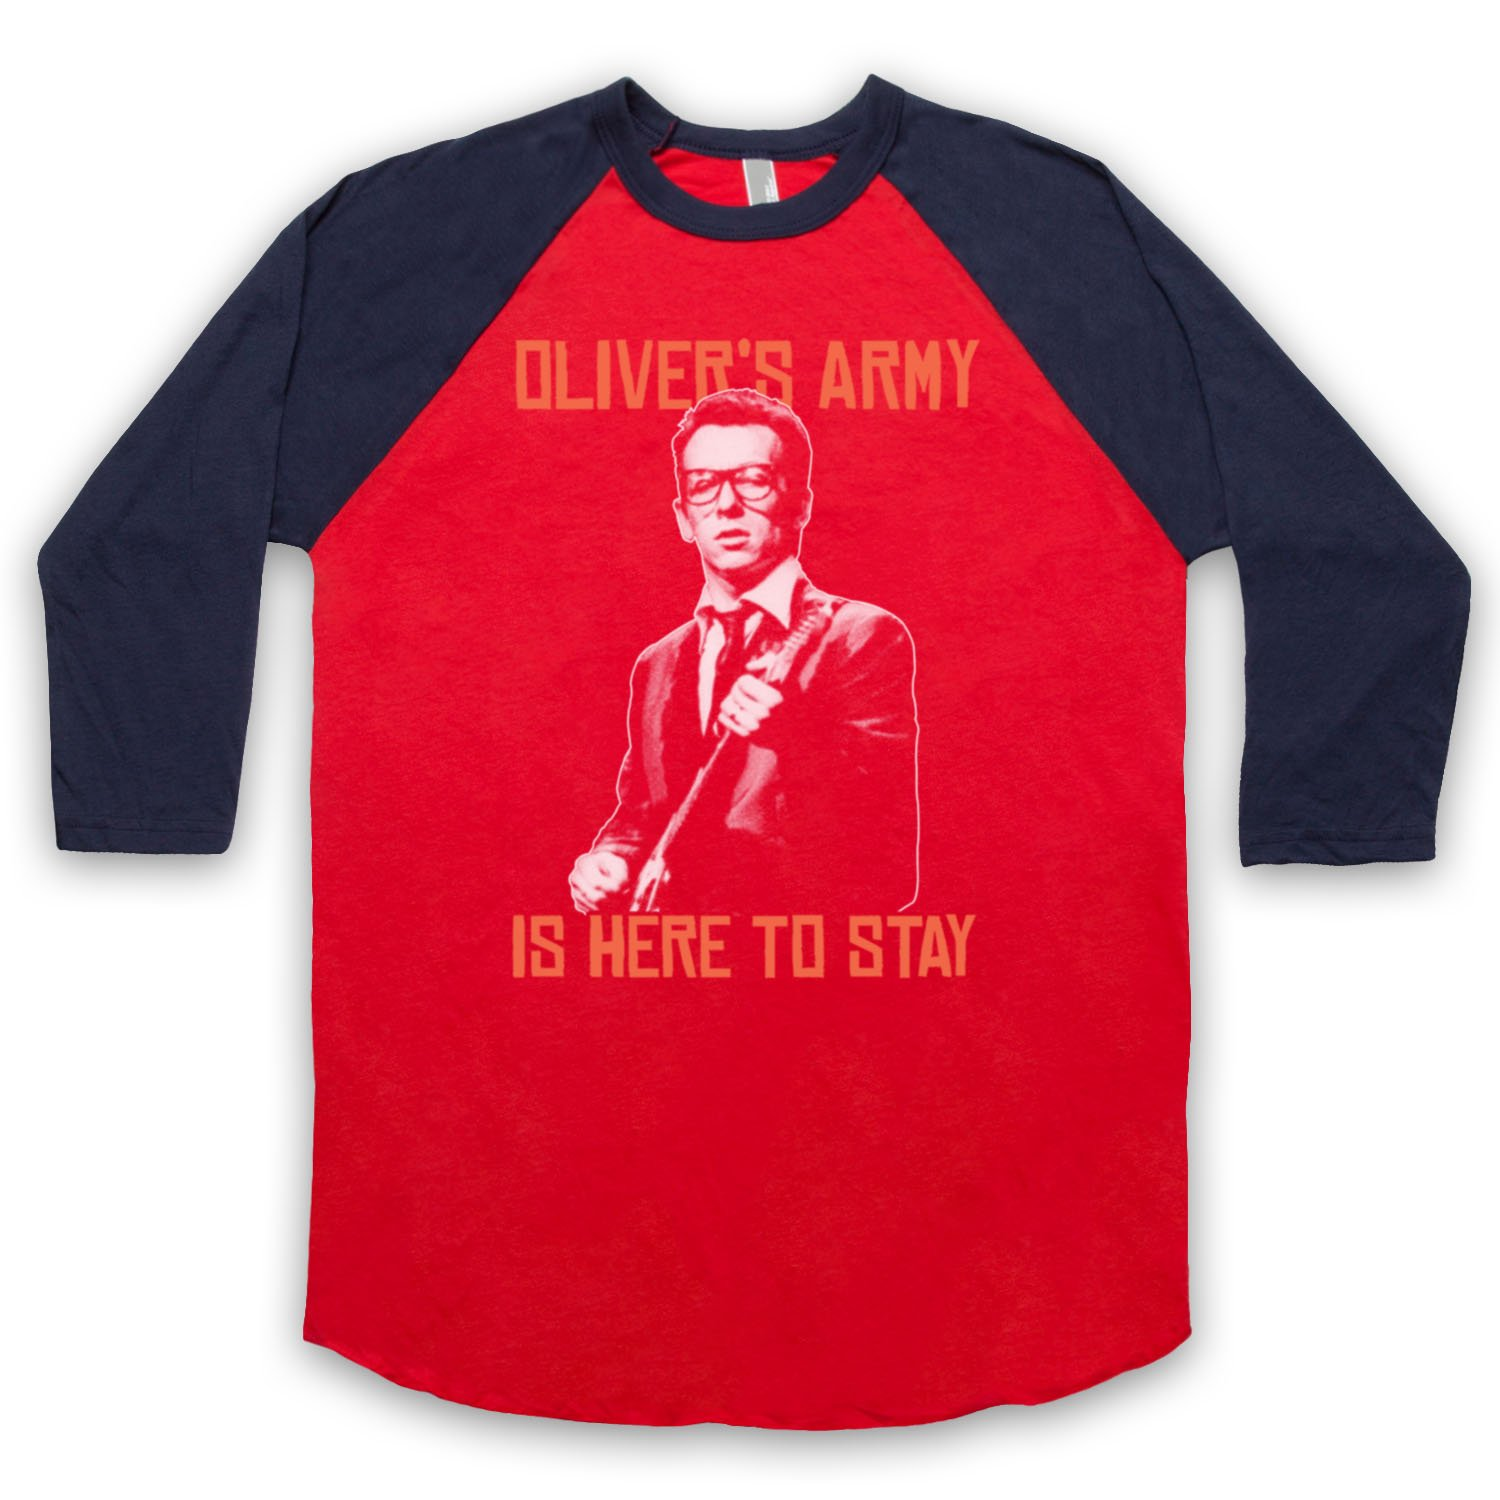 Inspired by Elvis Costello Oliver's Army Unofficial 3/4 Sleeve Retro Baseball Tee